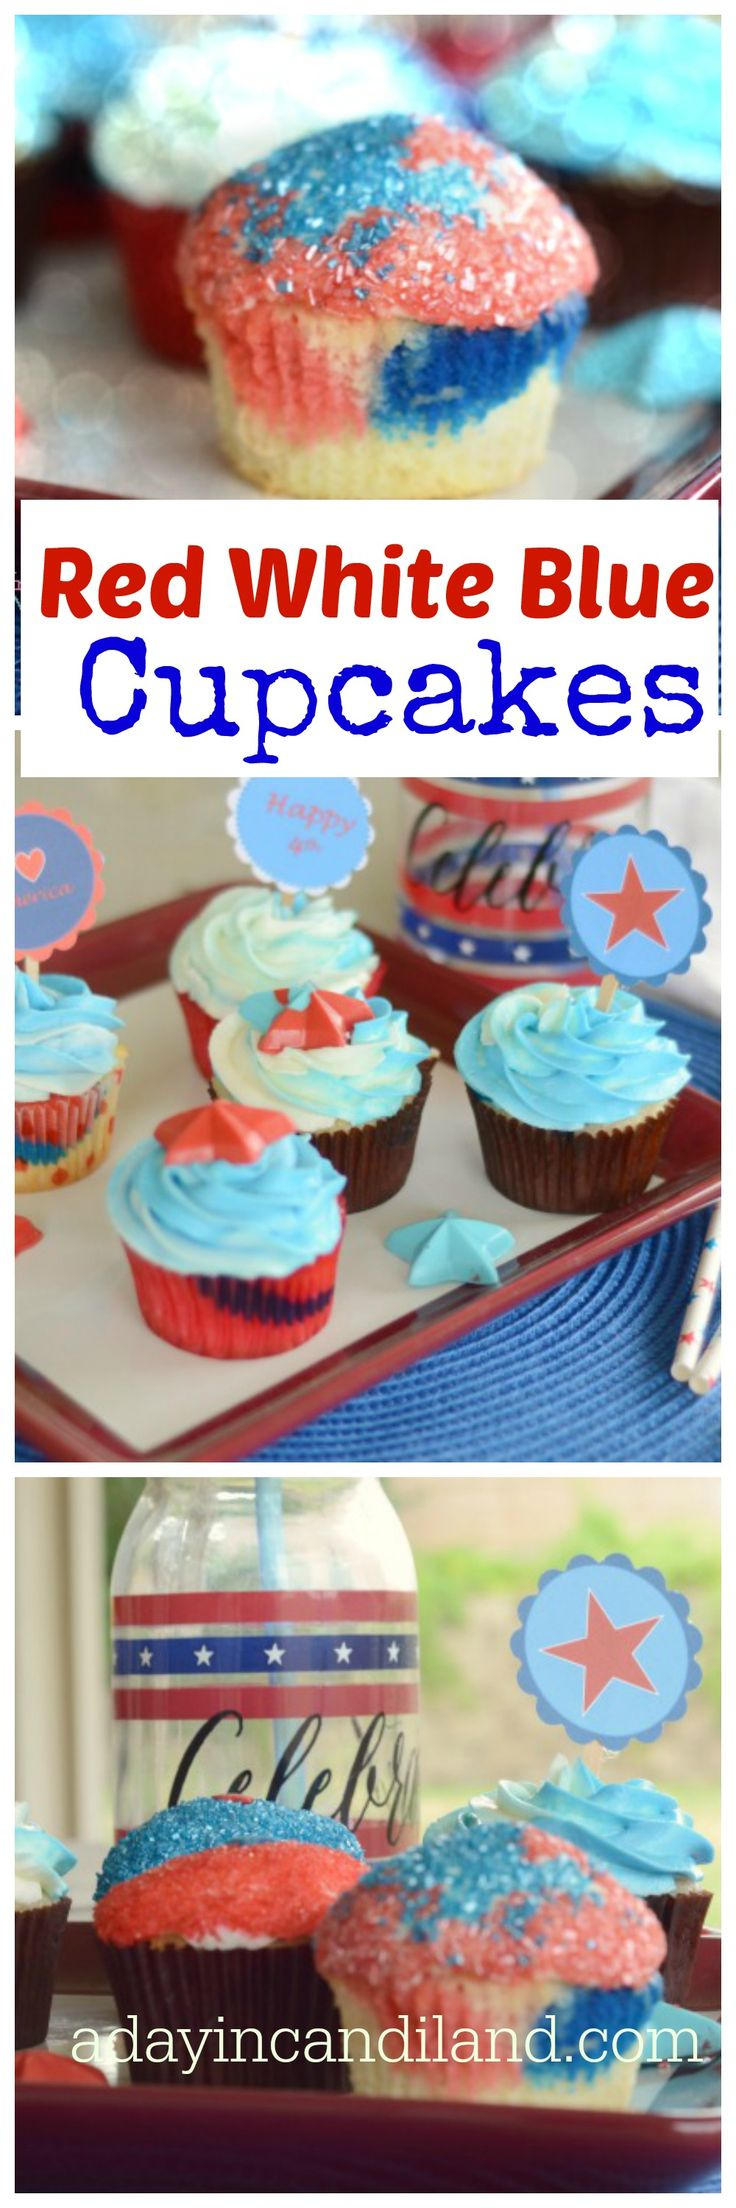 A Day In Candiland | Red White Blue Cupcakes with Cupcake Toppers for 4th of July | http://adayincandiland.com